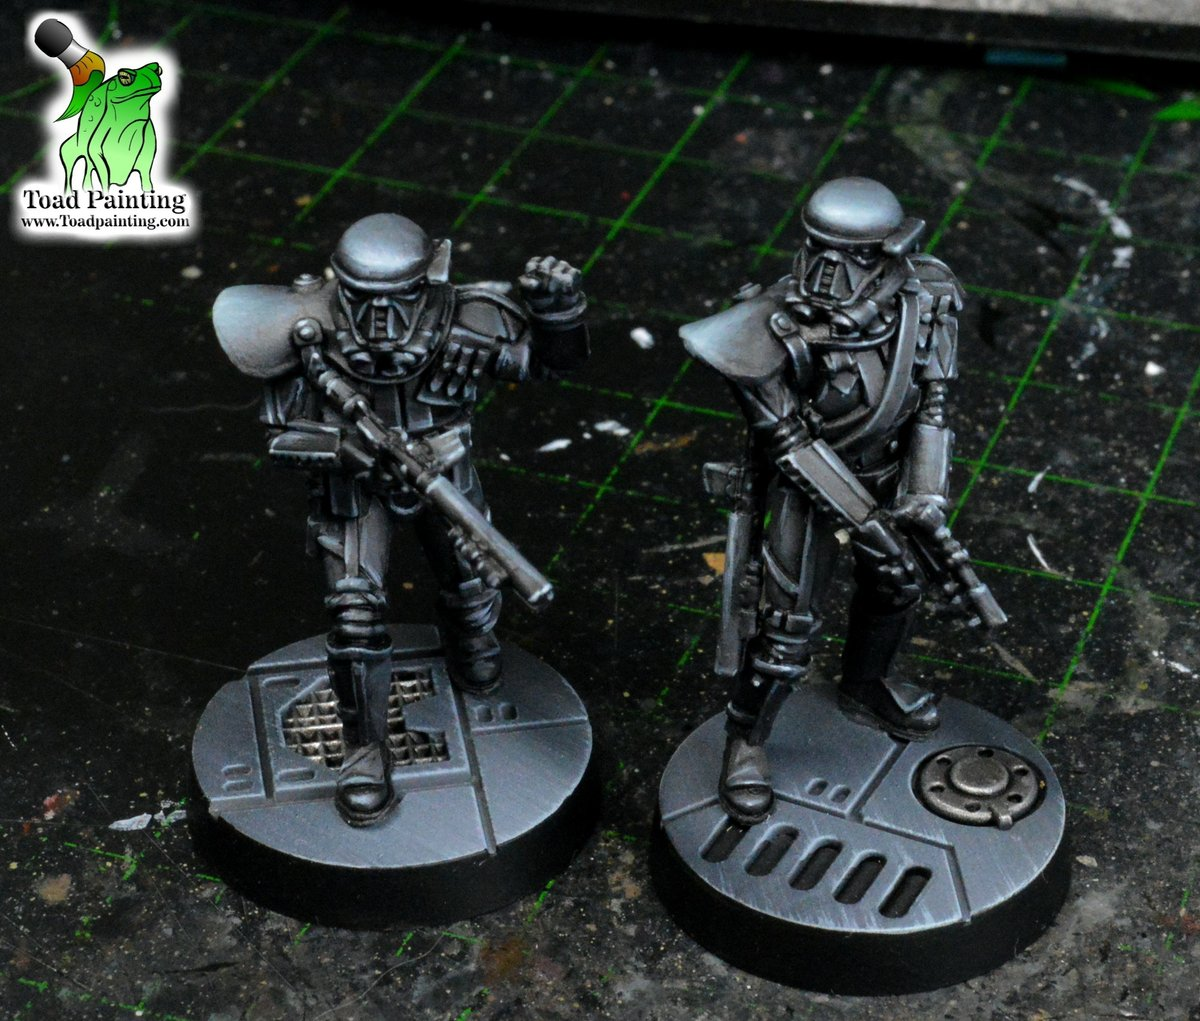 A couple of freshly based Death Troopers from #StarWarsLegion by #fantasyflightgames  #minipainting #miniaturepainting #miniatures #StarWars  #Warmongers https://t.co/Ic5Bt5MDk8